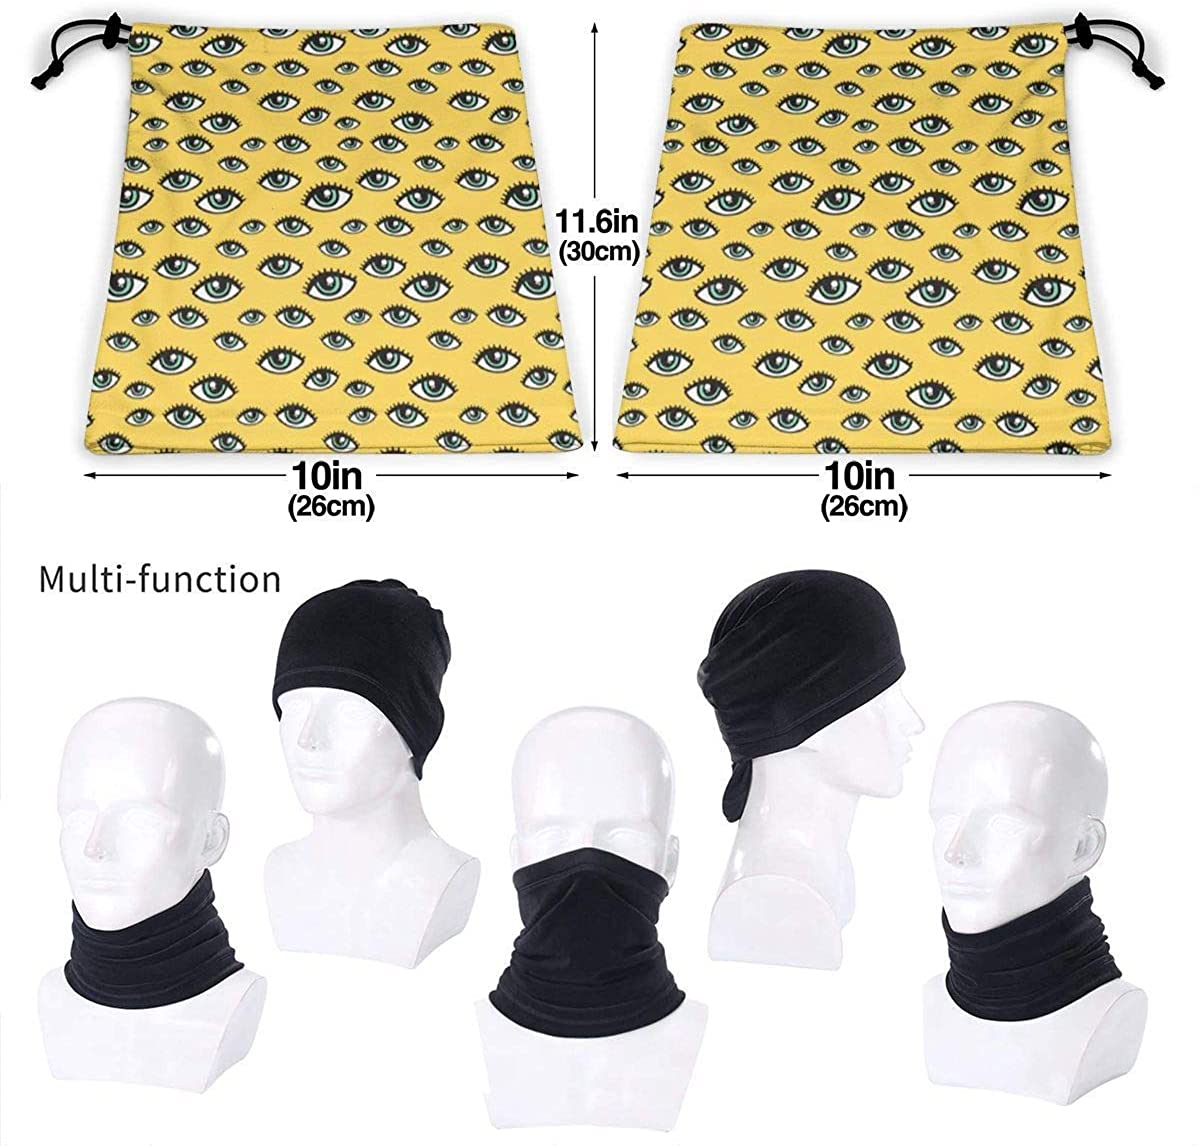 Eyes Pattern Microfiber Neck Warmer Balaclavas Soft Fleece Headwear Face Scarf Mask For Winter